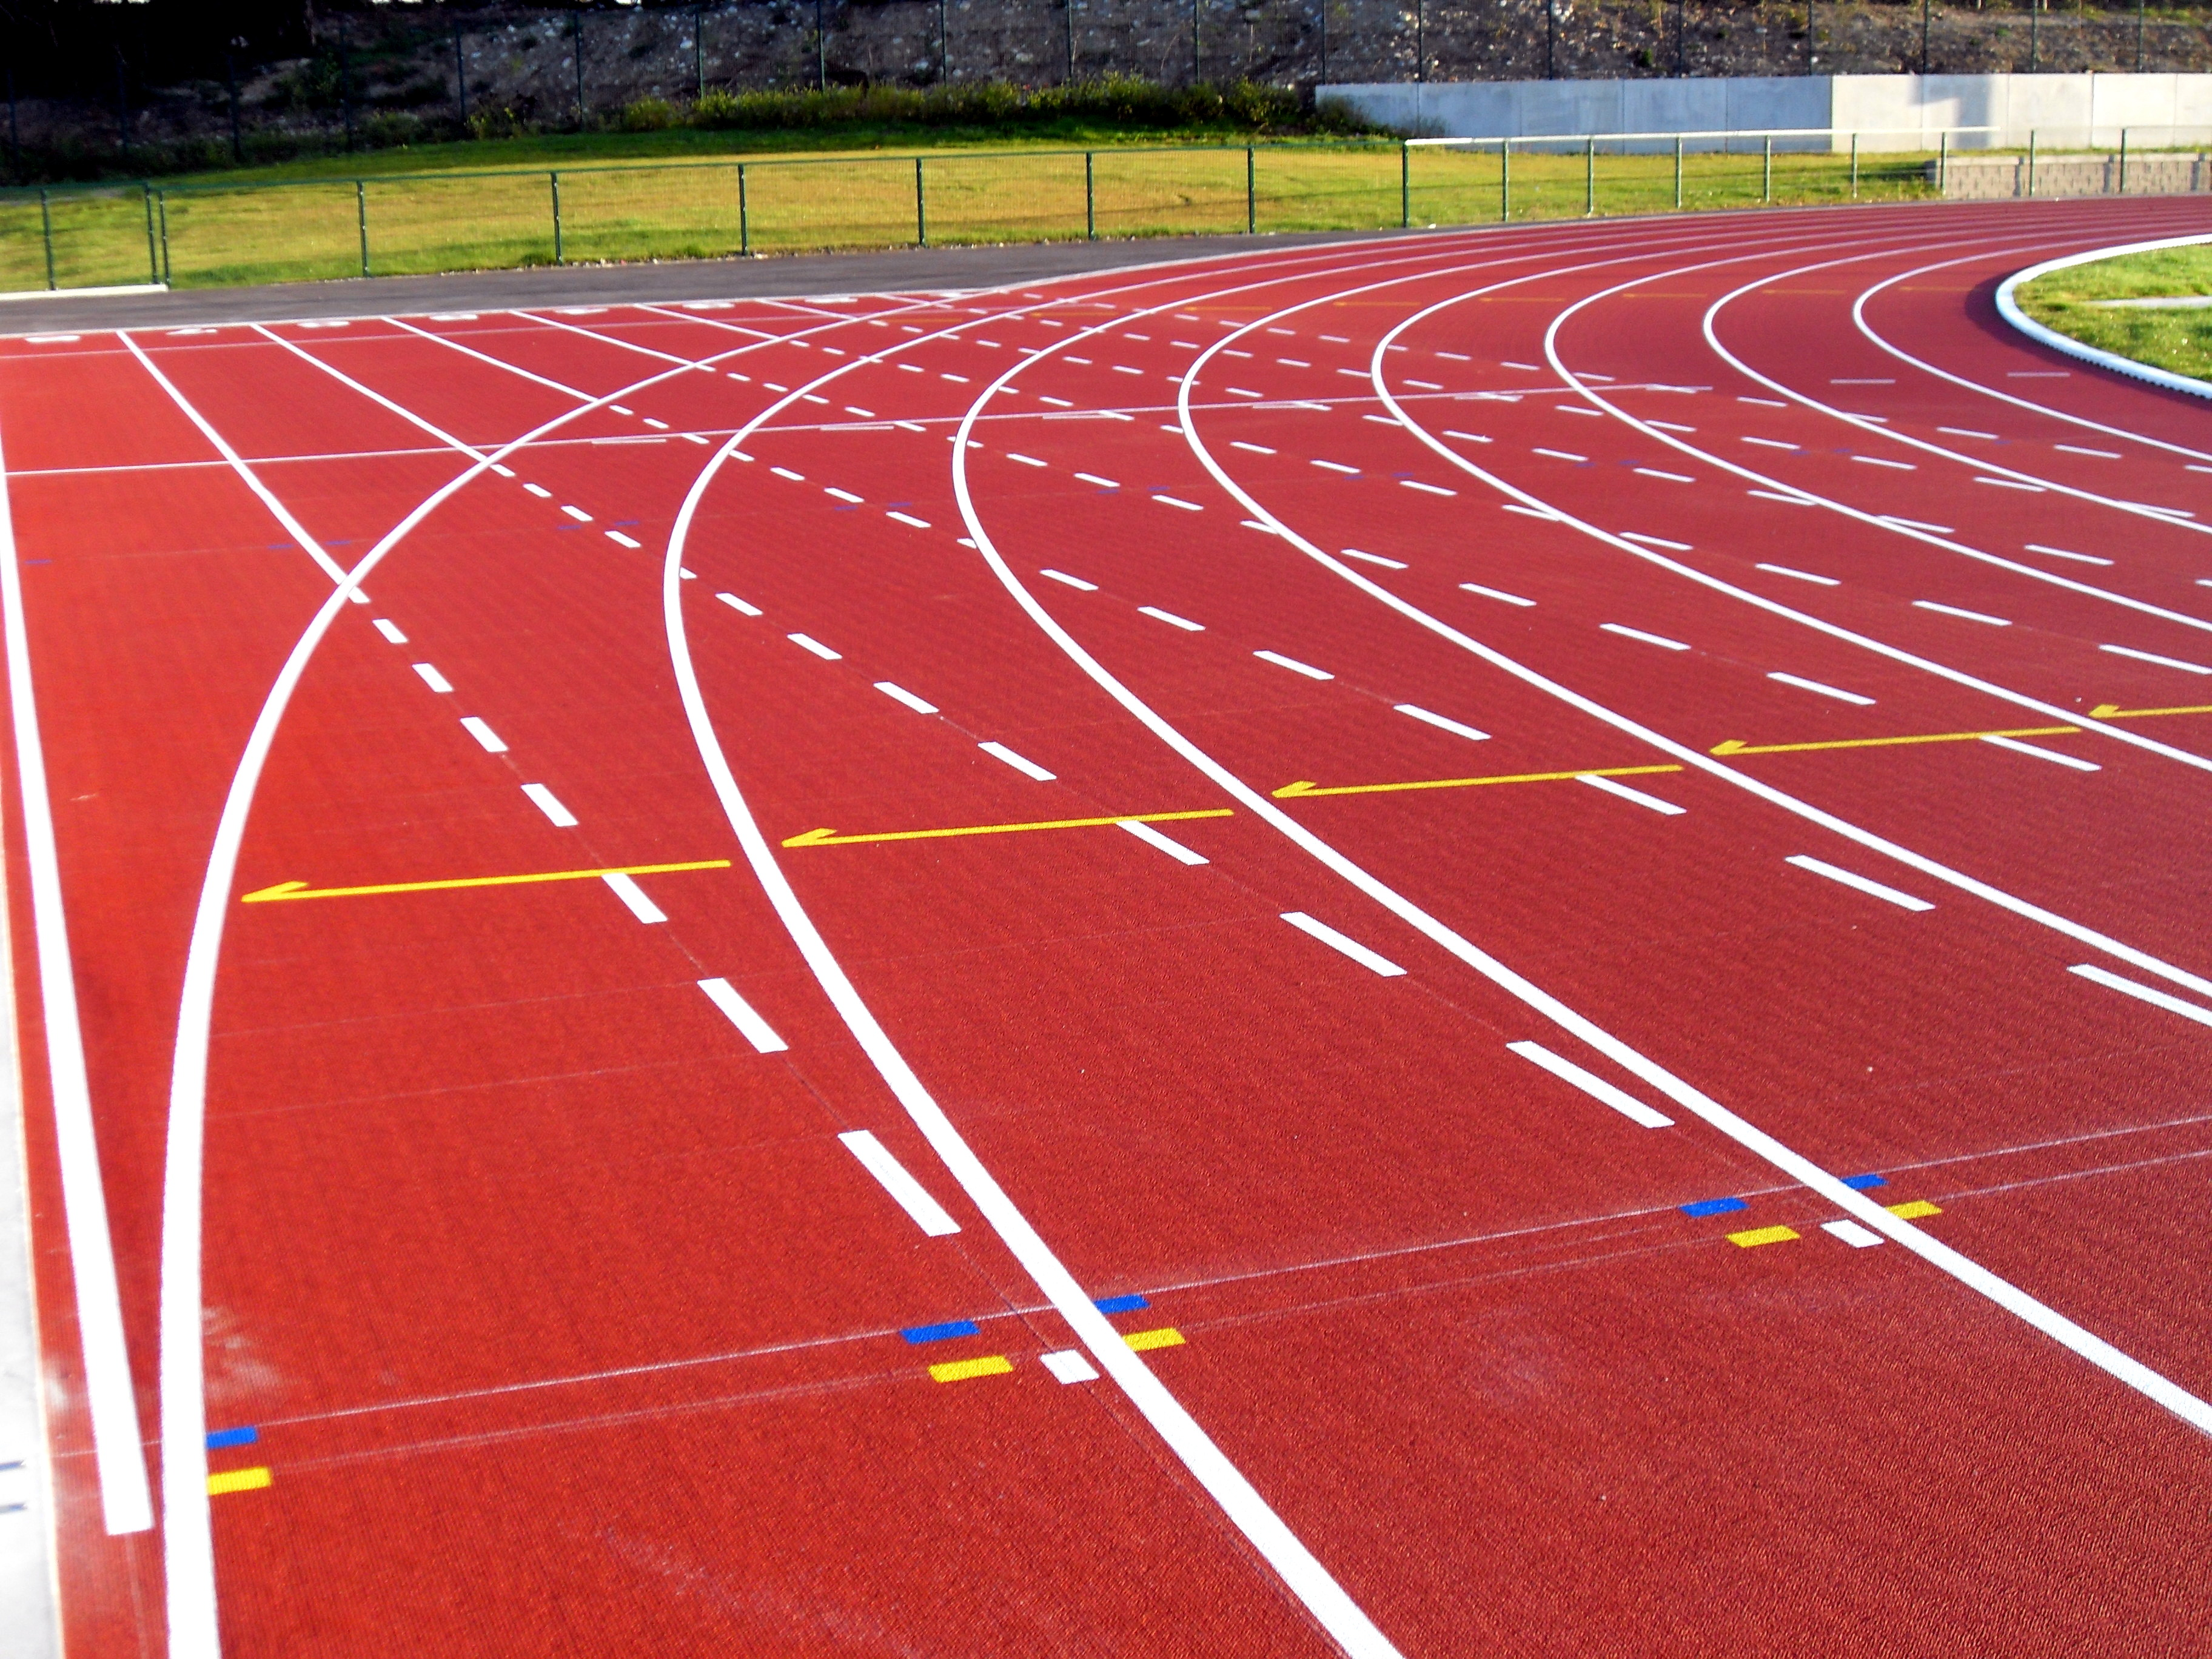 running track in high school A high school field track that meets the standards of the international association of athletics federation, abbreviated as iaaf, has an inside perimeter of 400 meters the straight lengths of the track are 8439 meters long, while the curved ends are 11561 meters.